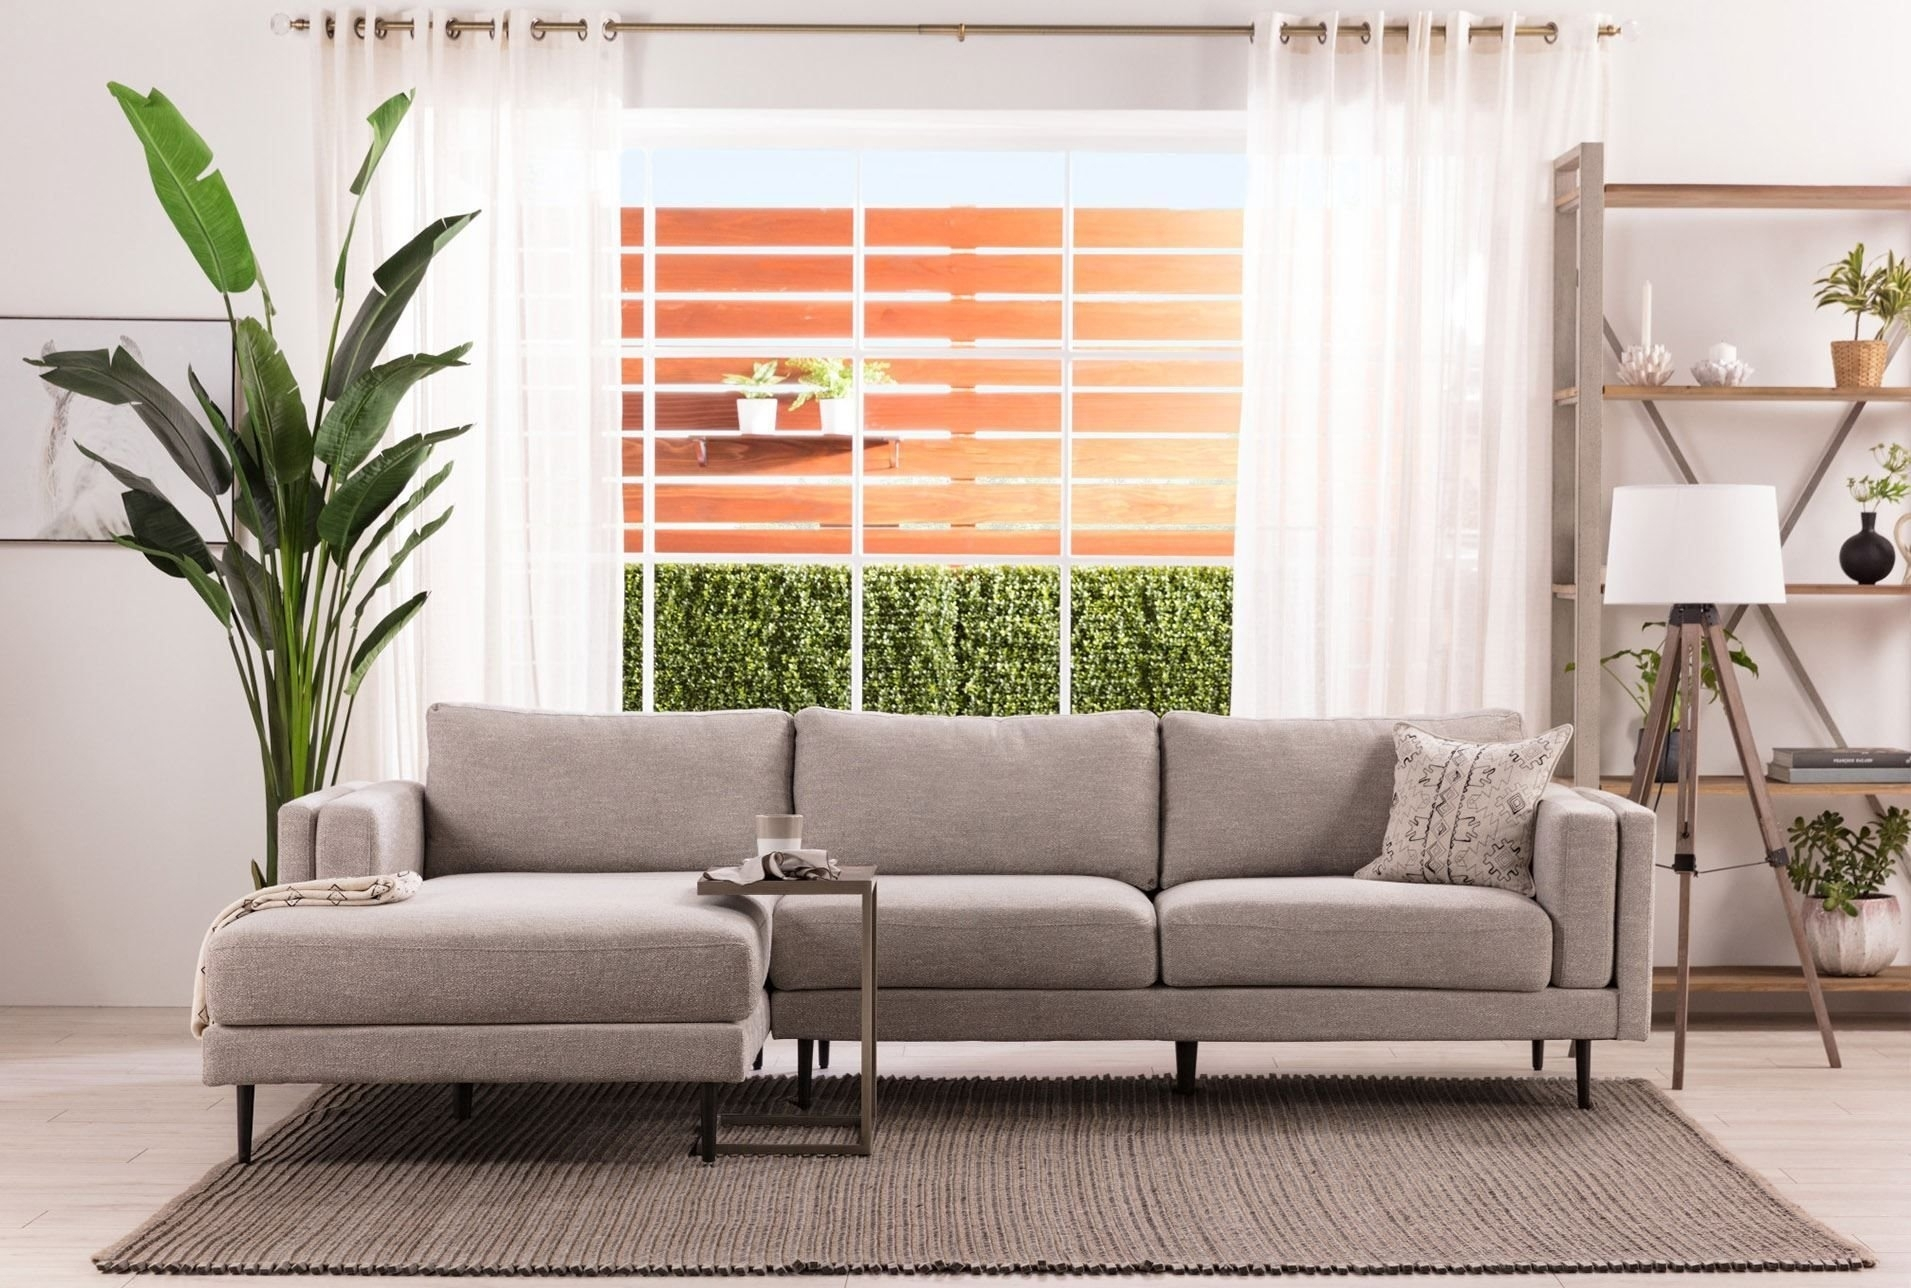 Simple 25 2 Piece Sectionals With Chaise Awesome | Russiandesignshow Throughout Cosmos Grey 2 Piece Sectionals With Laf Chaise (View 5 of 25)